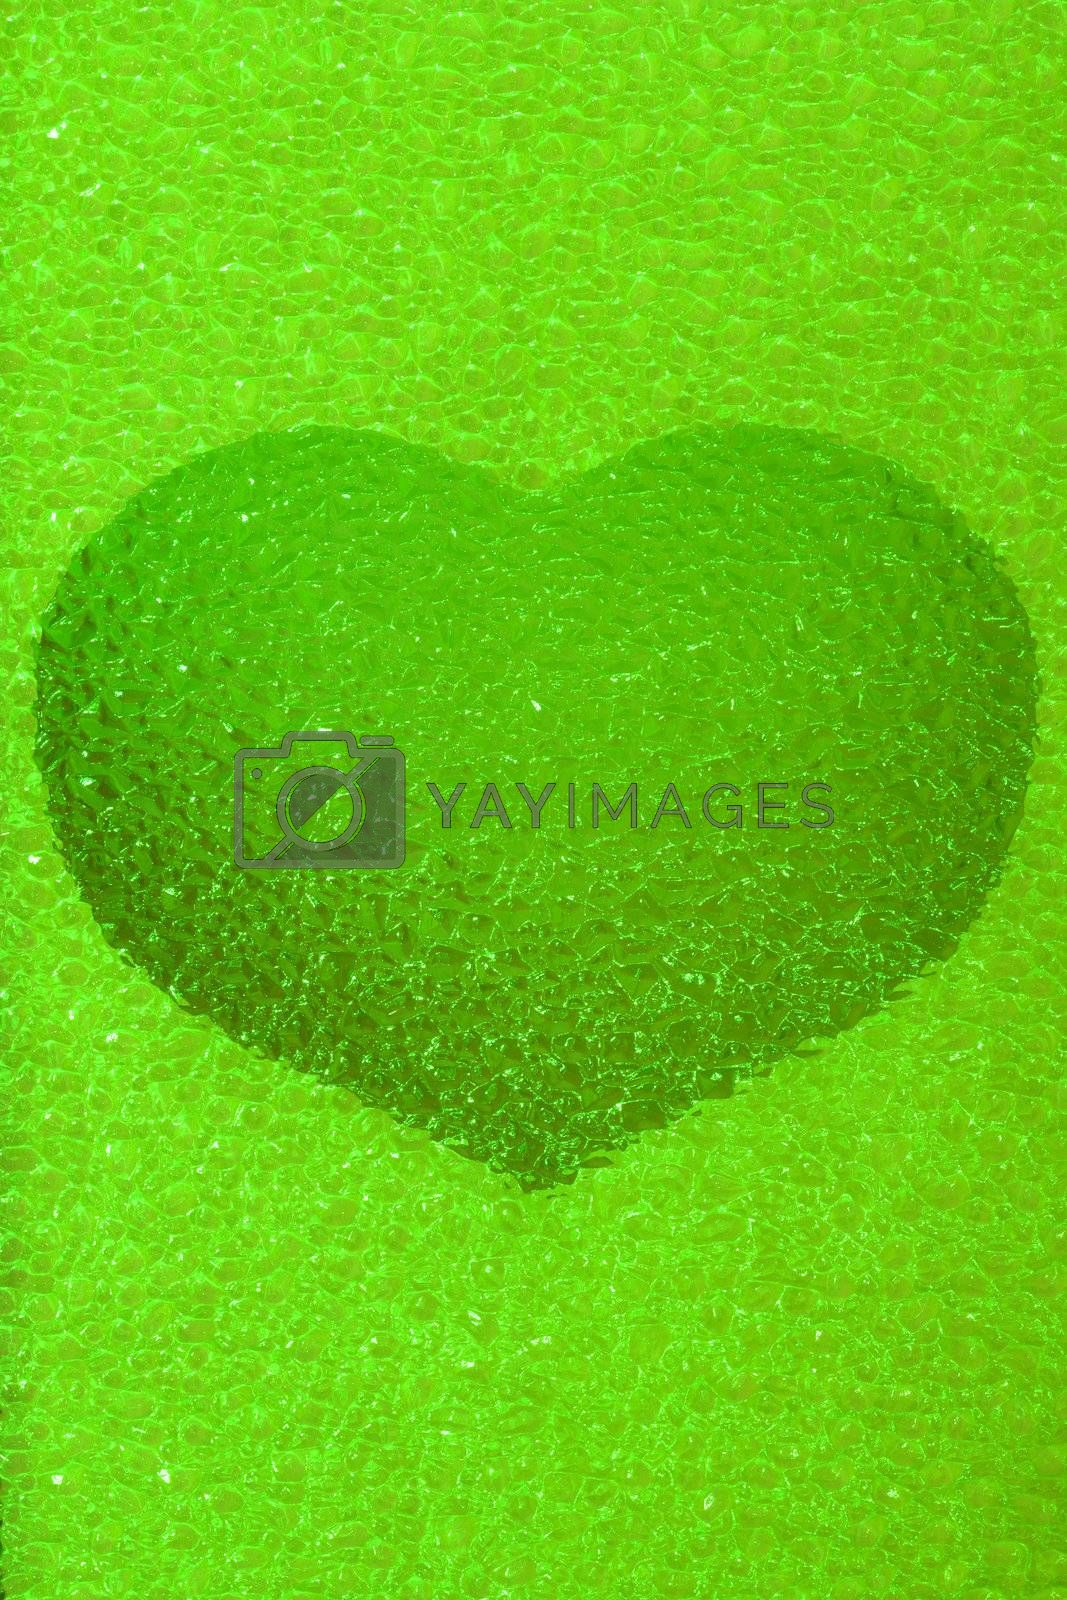 frozen emerald (green) heart with crystals in 3d